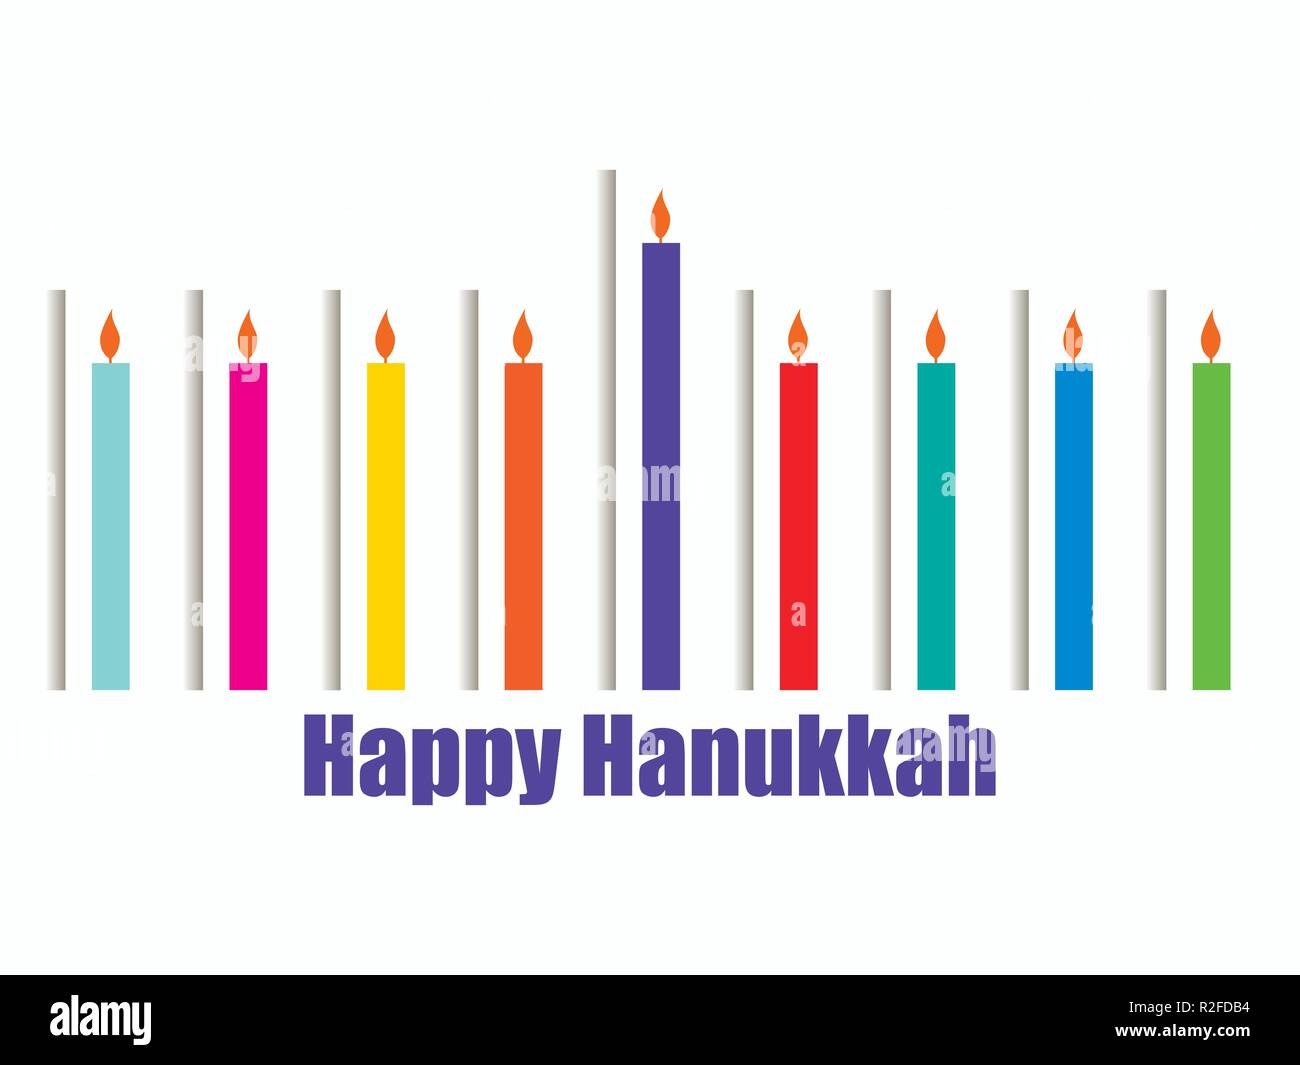 Happy hanukkah. Hanukkah candles. Menorah with nine candles. Paper cut style with shadow. Vector illustration - Stock Image